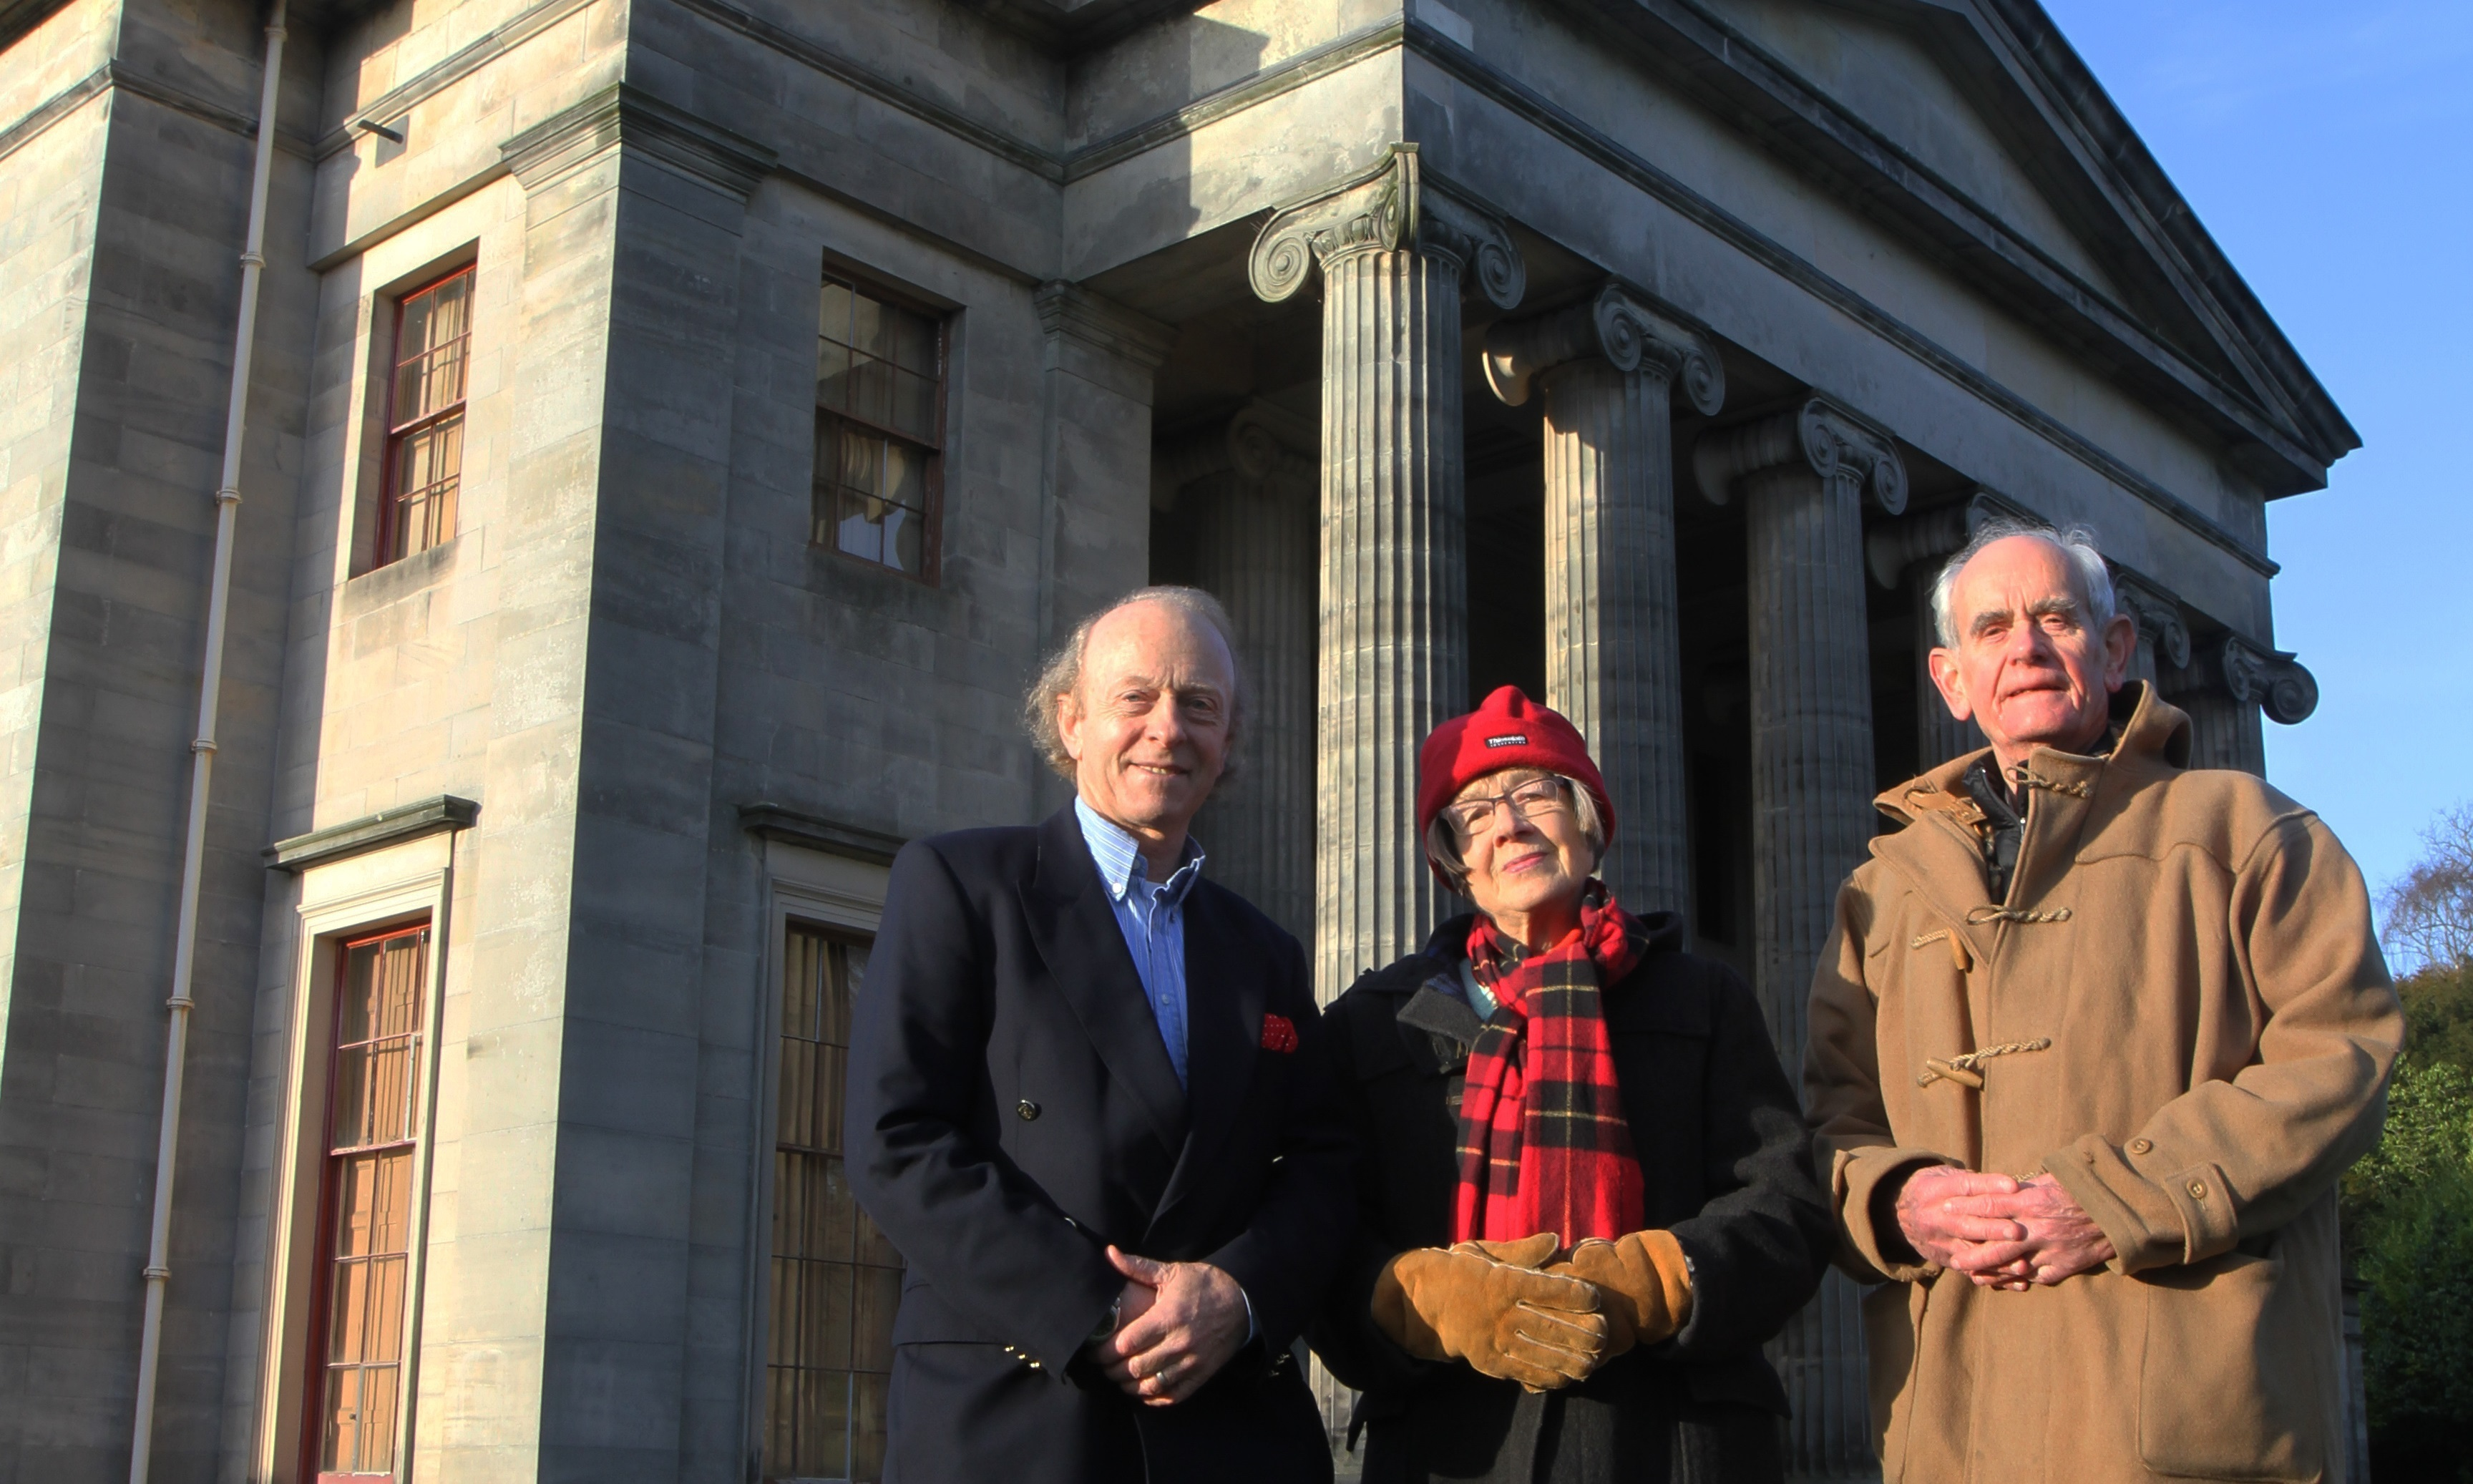 Captain James Crawford with fellow campaigners Elizabeth Picton and Commander John Picton.